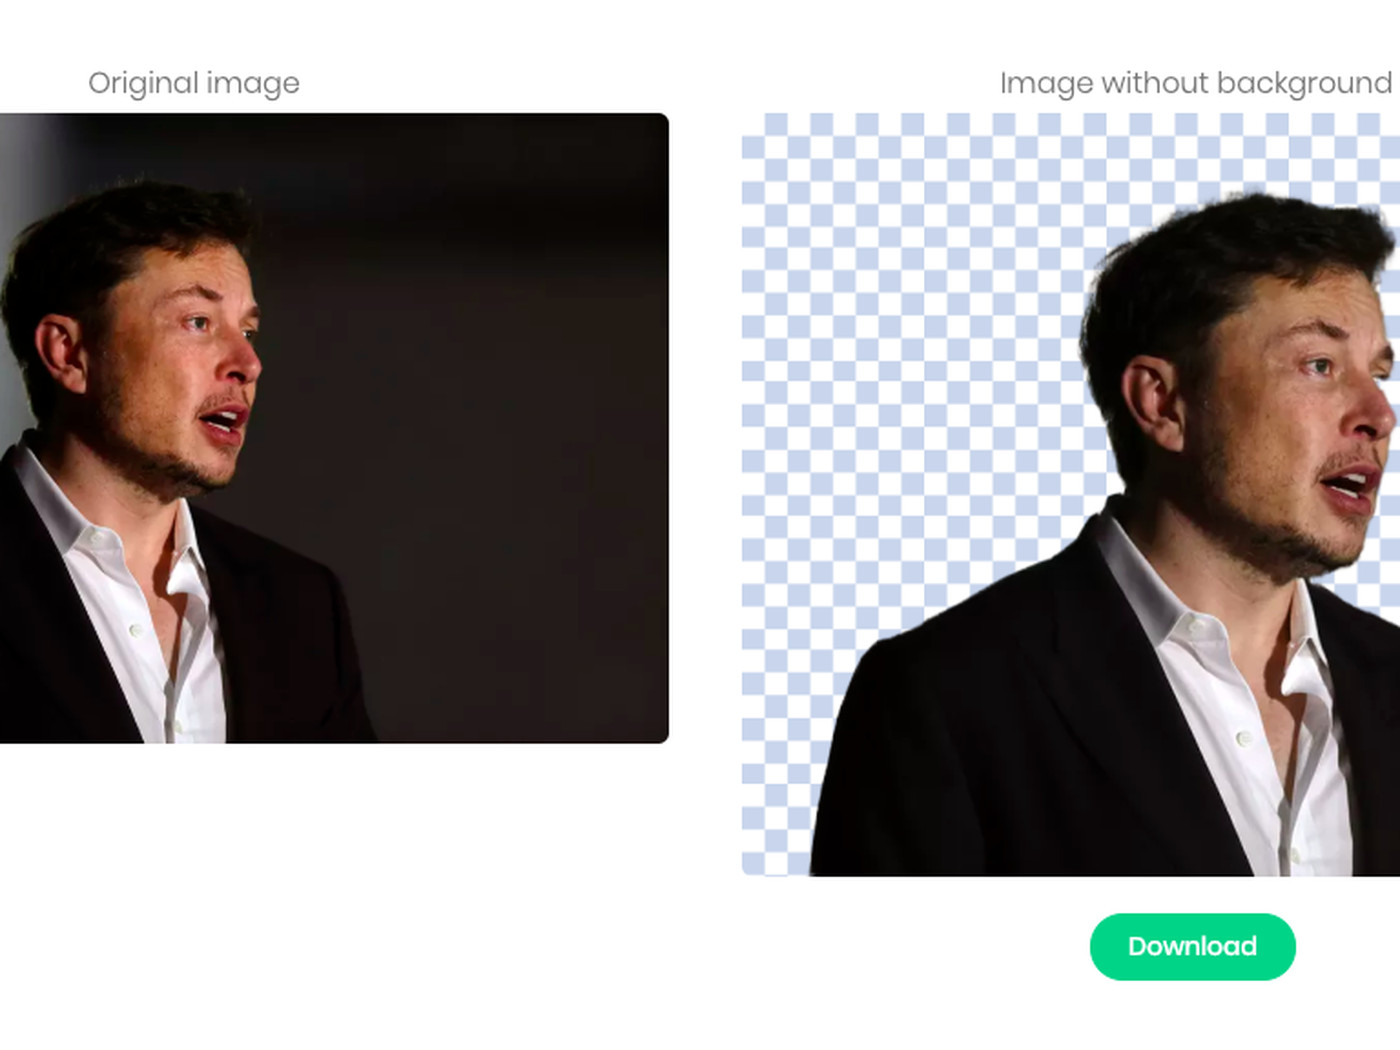 This free online tool uses AI to quickly remove the.